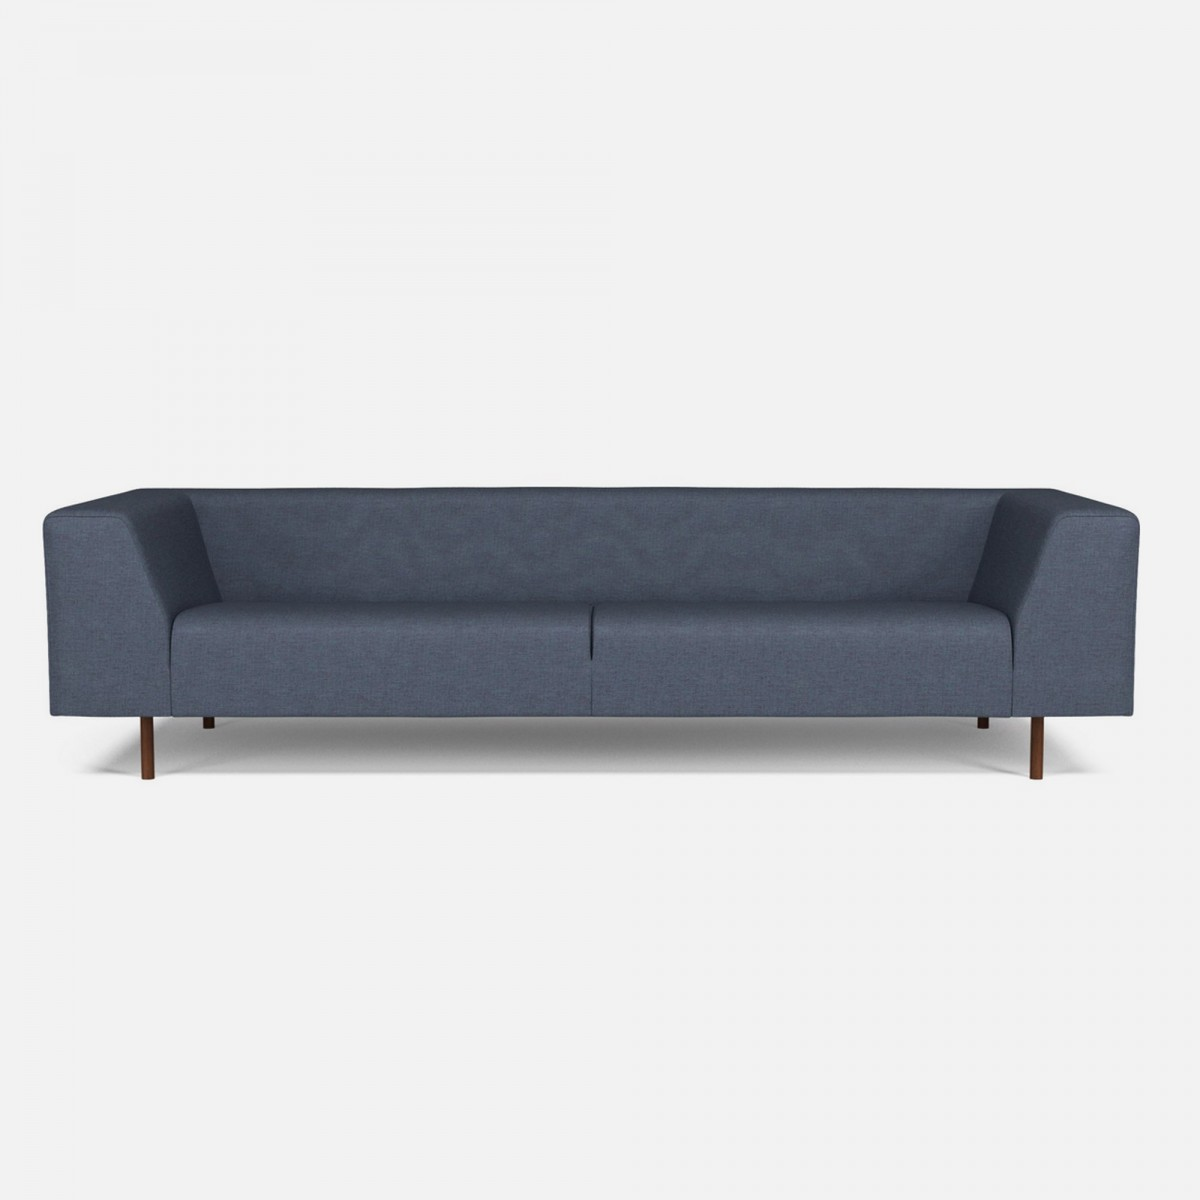 Piero Lissoni Sofa Images Modern Furniture And Decor